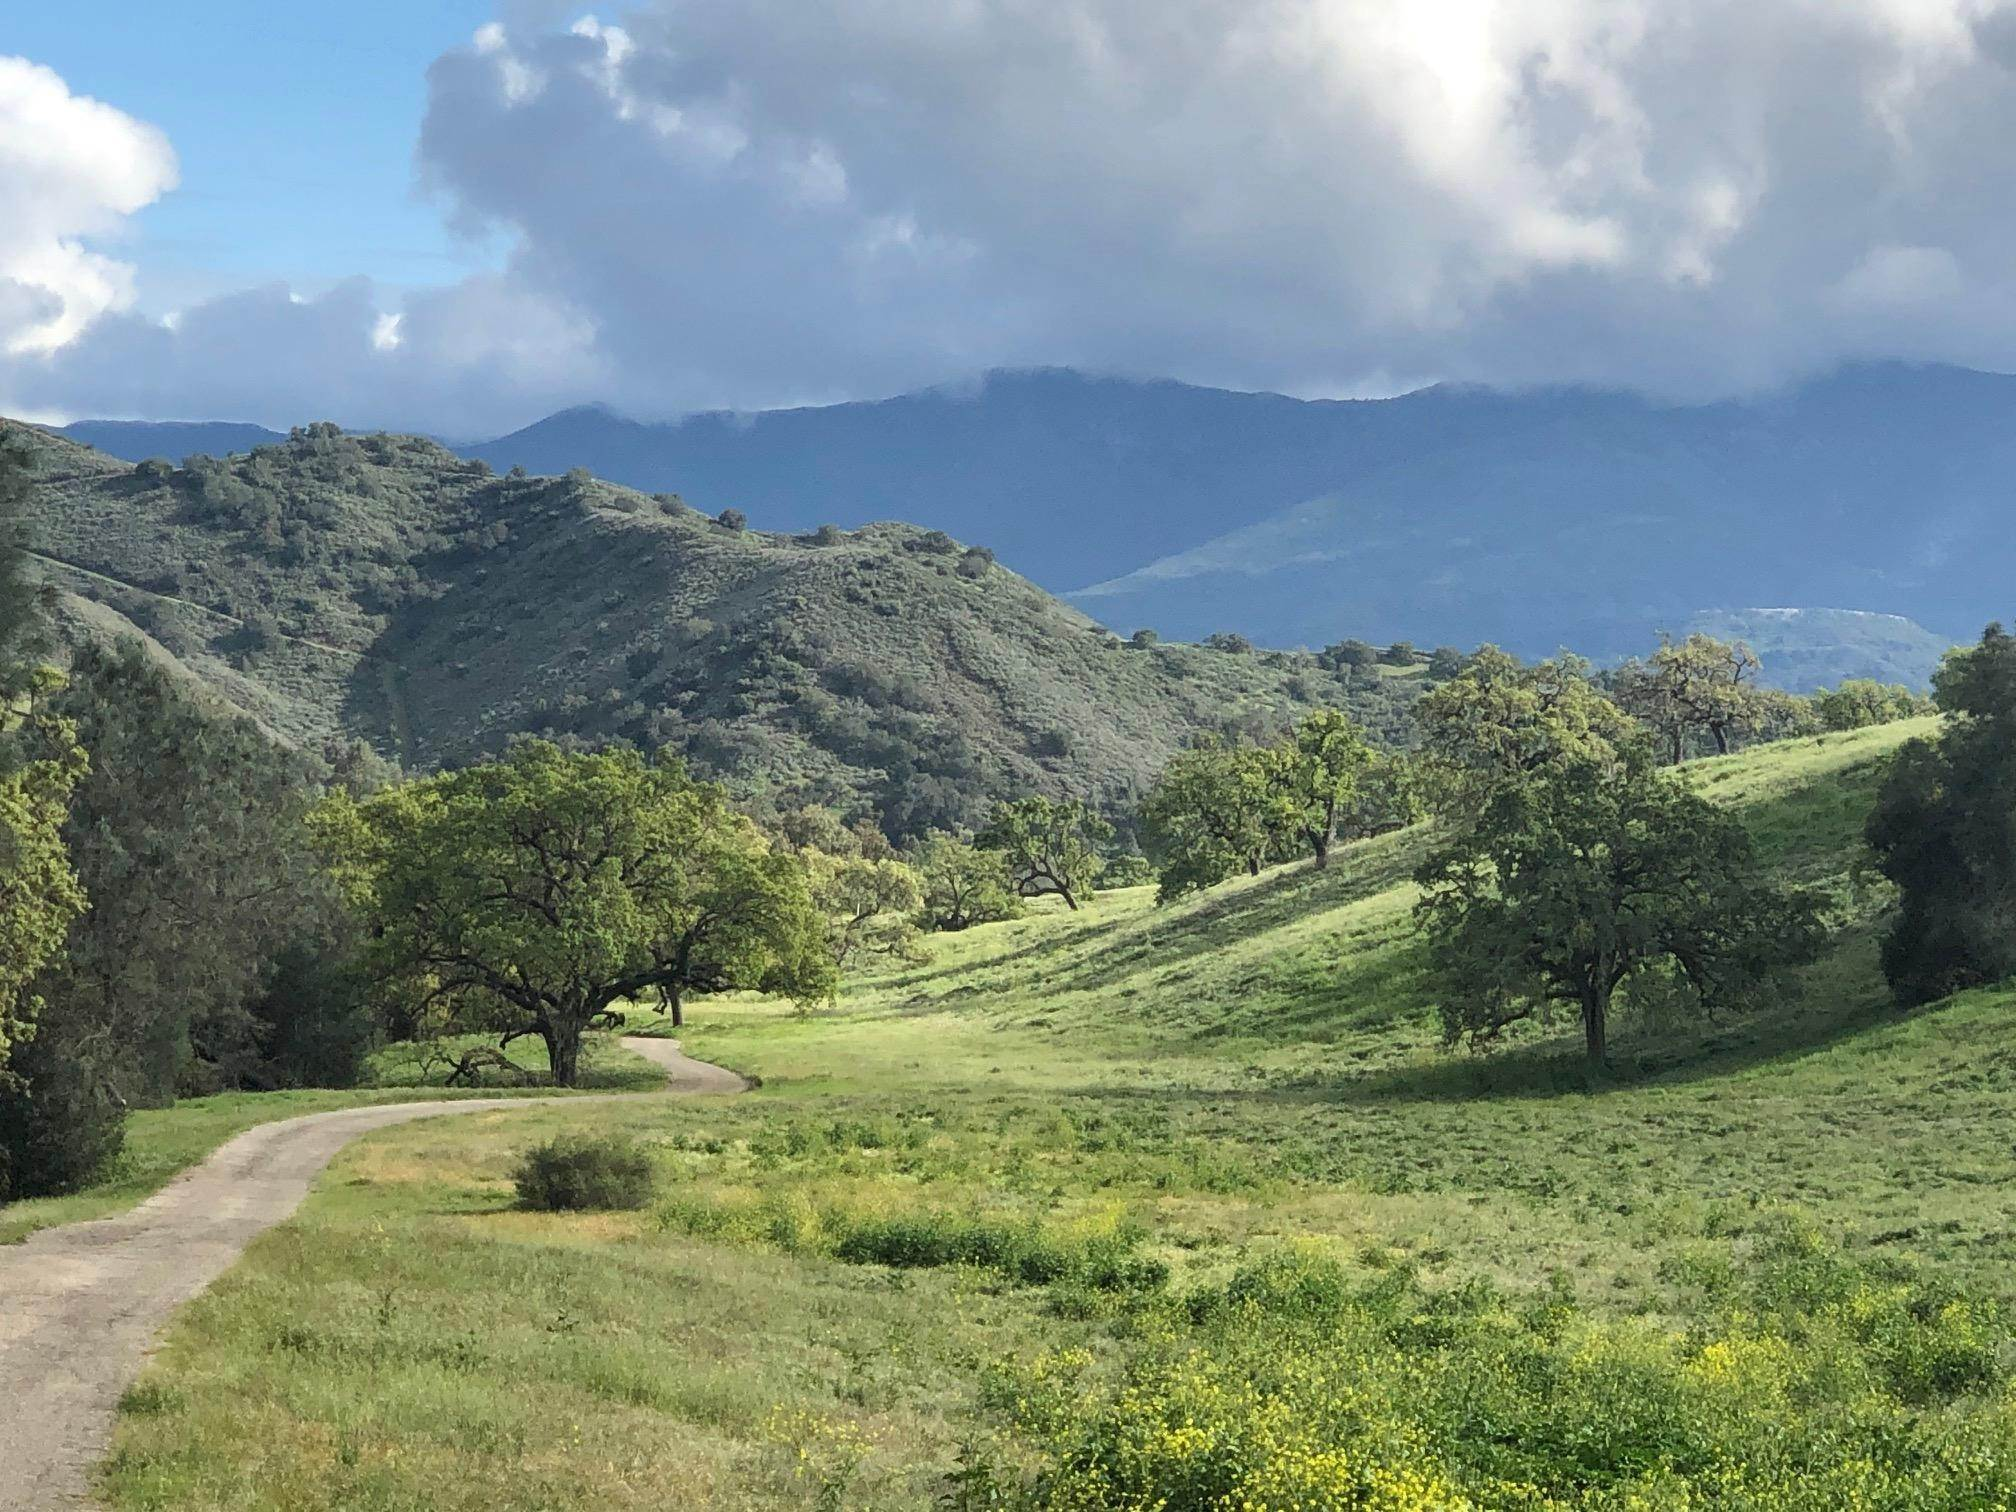 Farm and Ranch Properties for Sale at 7355 Happy Canyon Road Road Santa Ynez, California 93460 United States